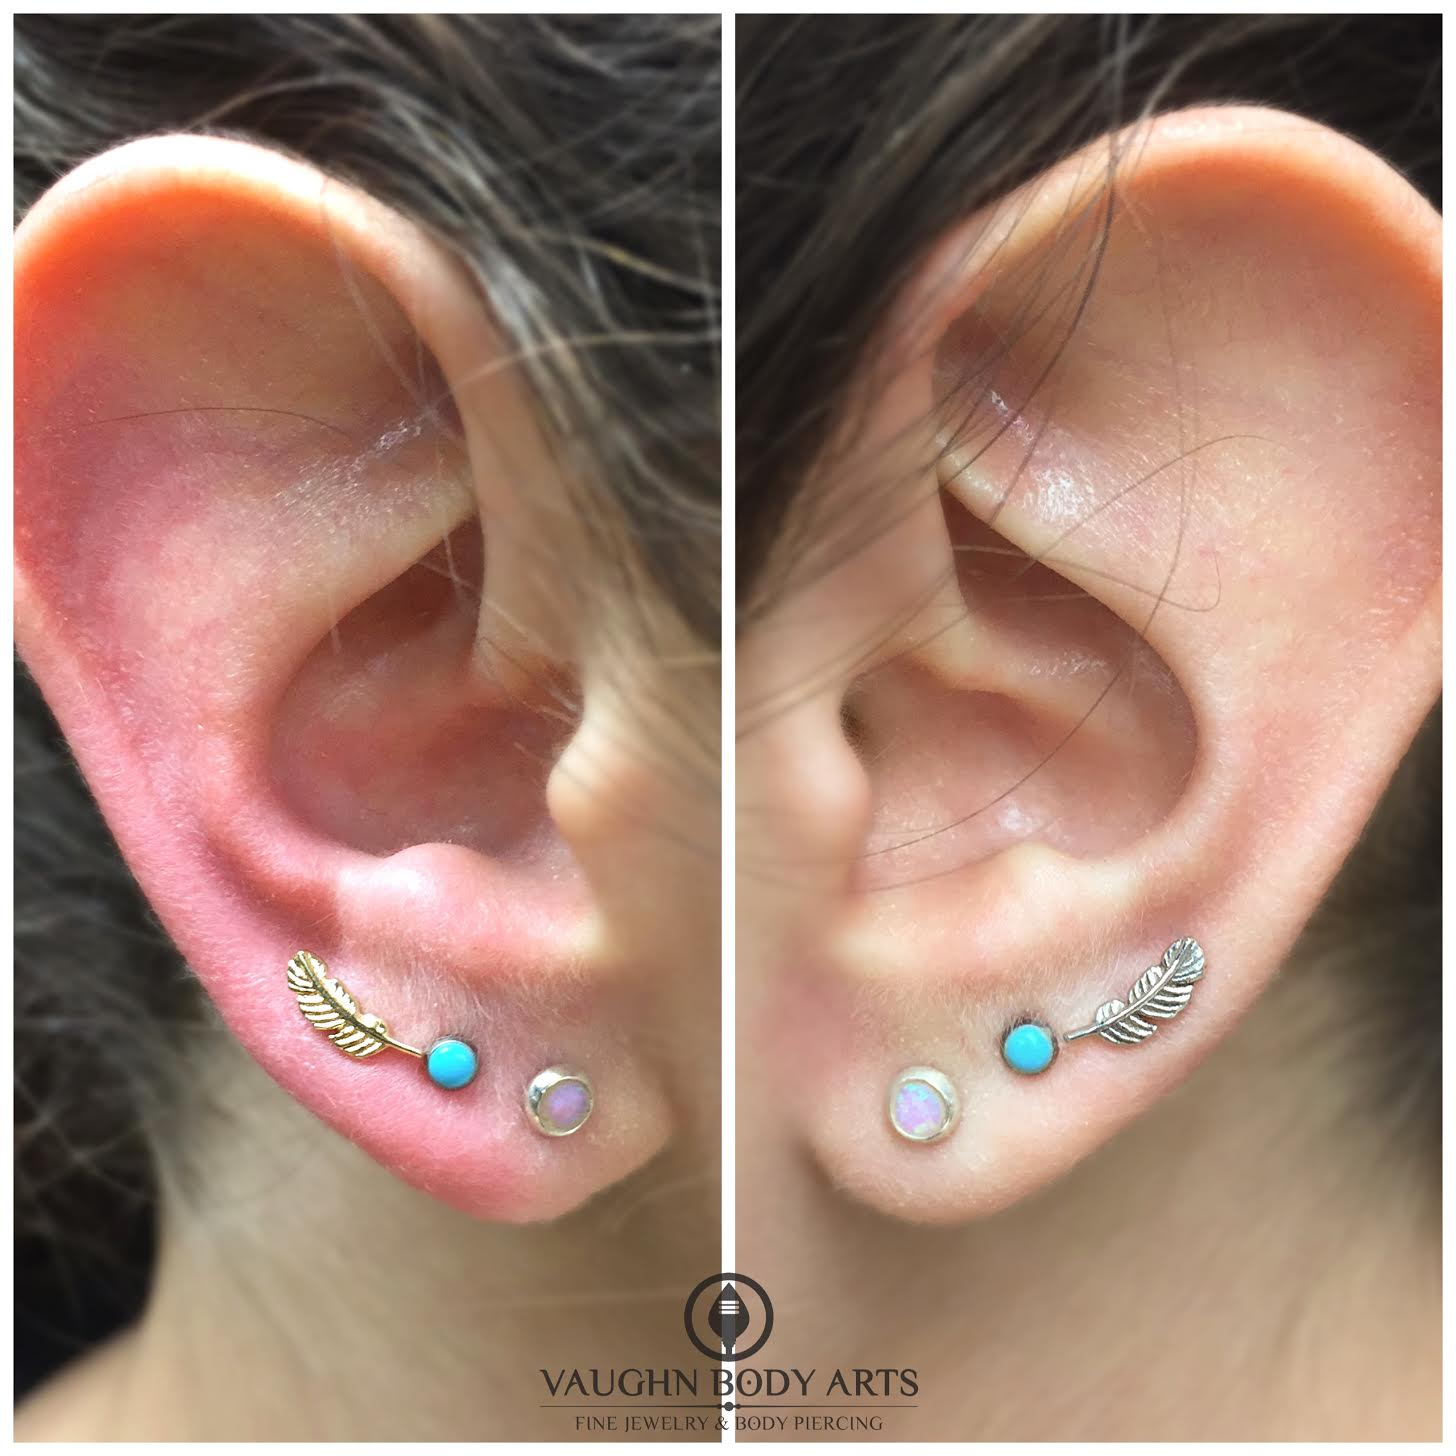 Earlobe piercings with 14k yellow and white gold feather ends from BVLA.